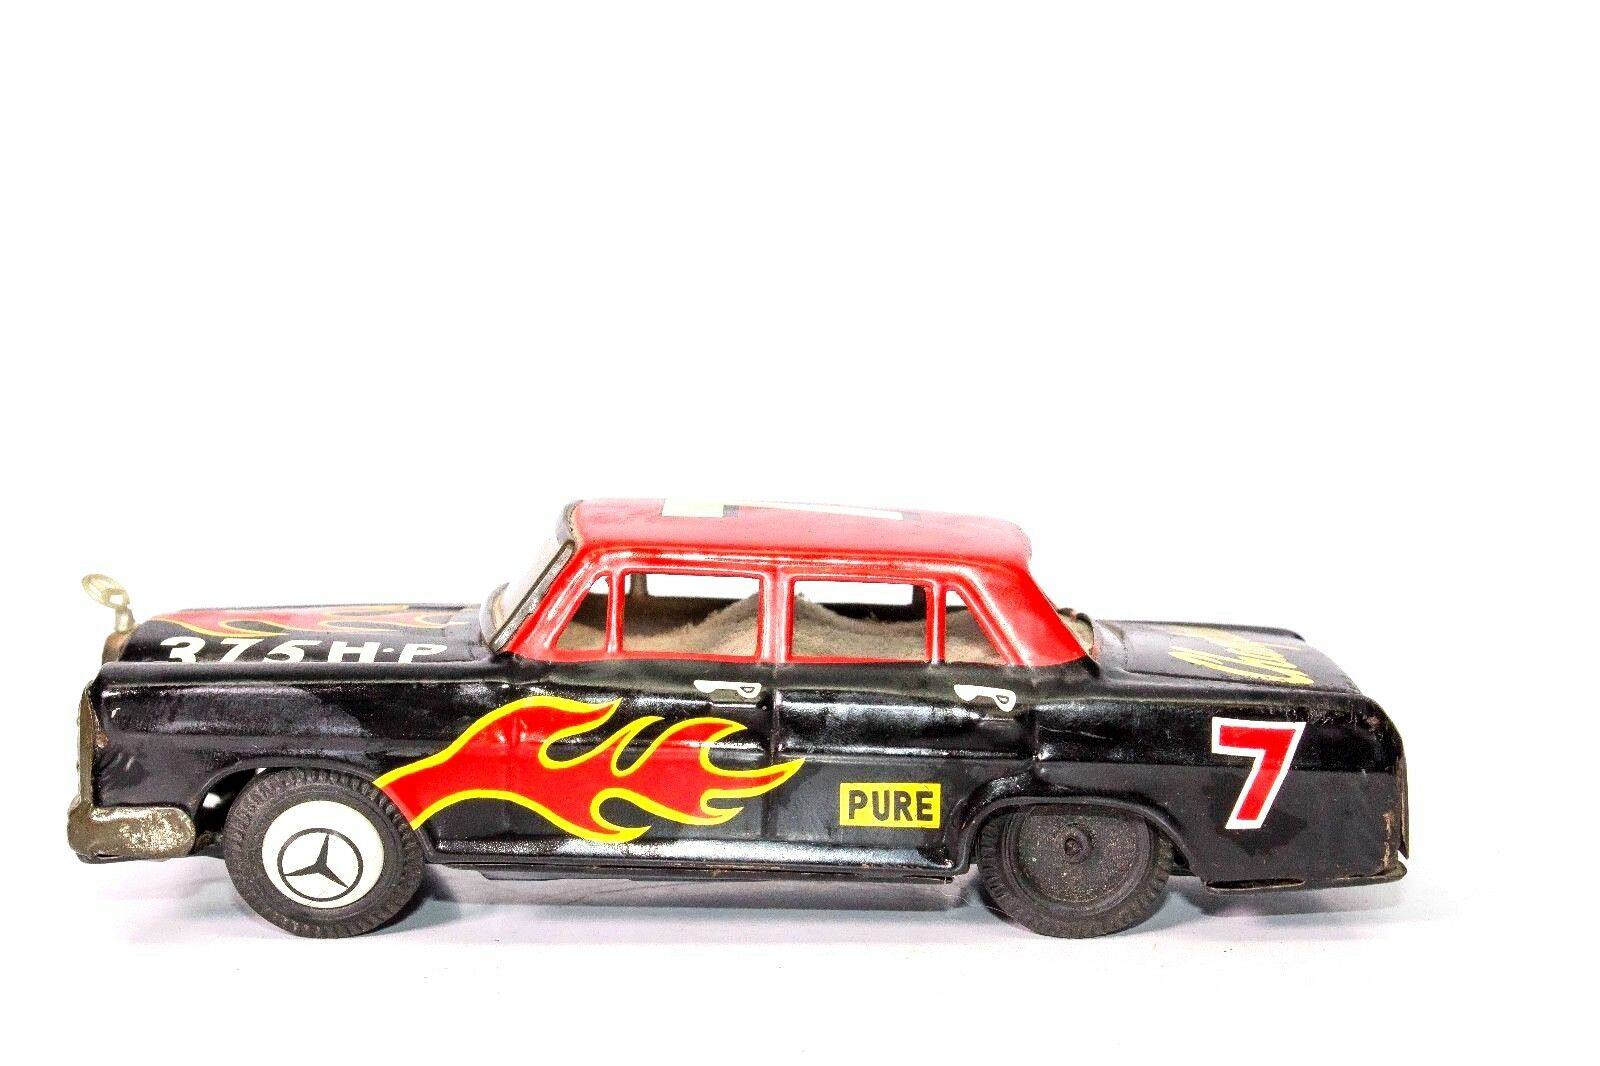 Vintage Giapponese Scatola di Latta Friction Mercedes Benz 250SE Hot Rod